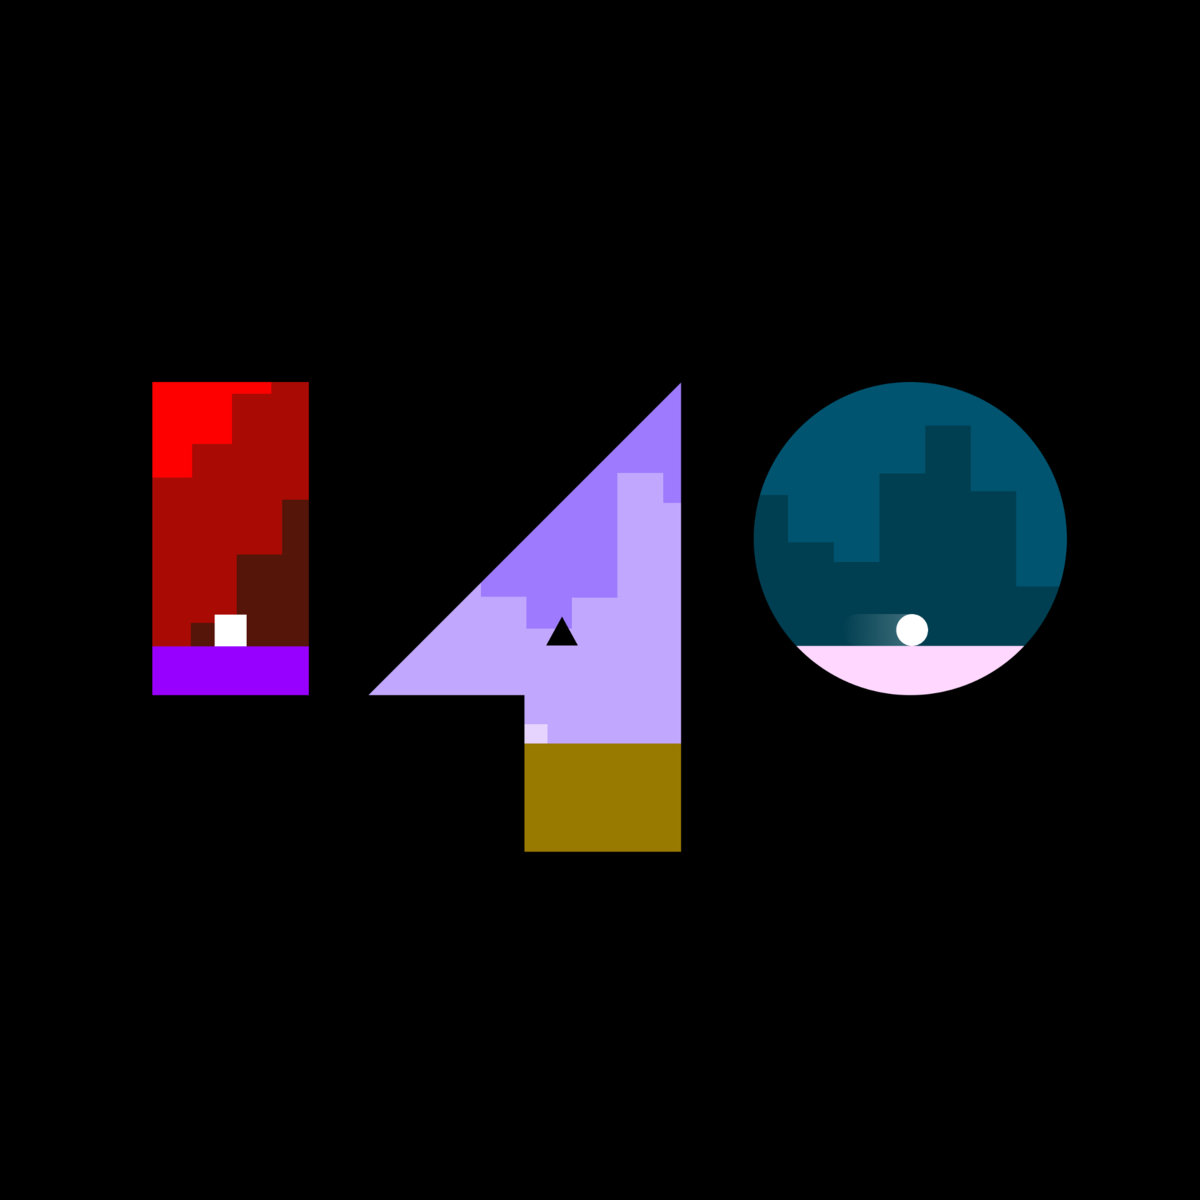 140 (Video Game)